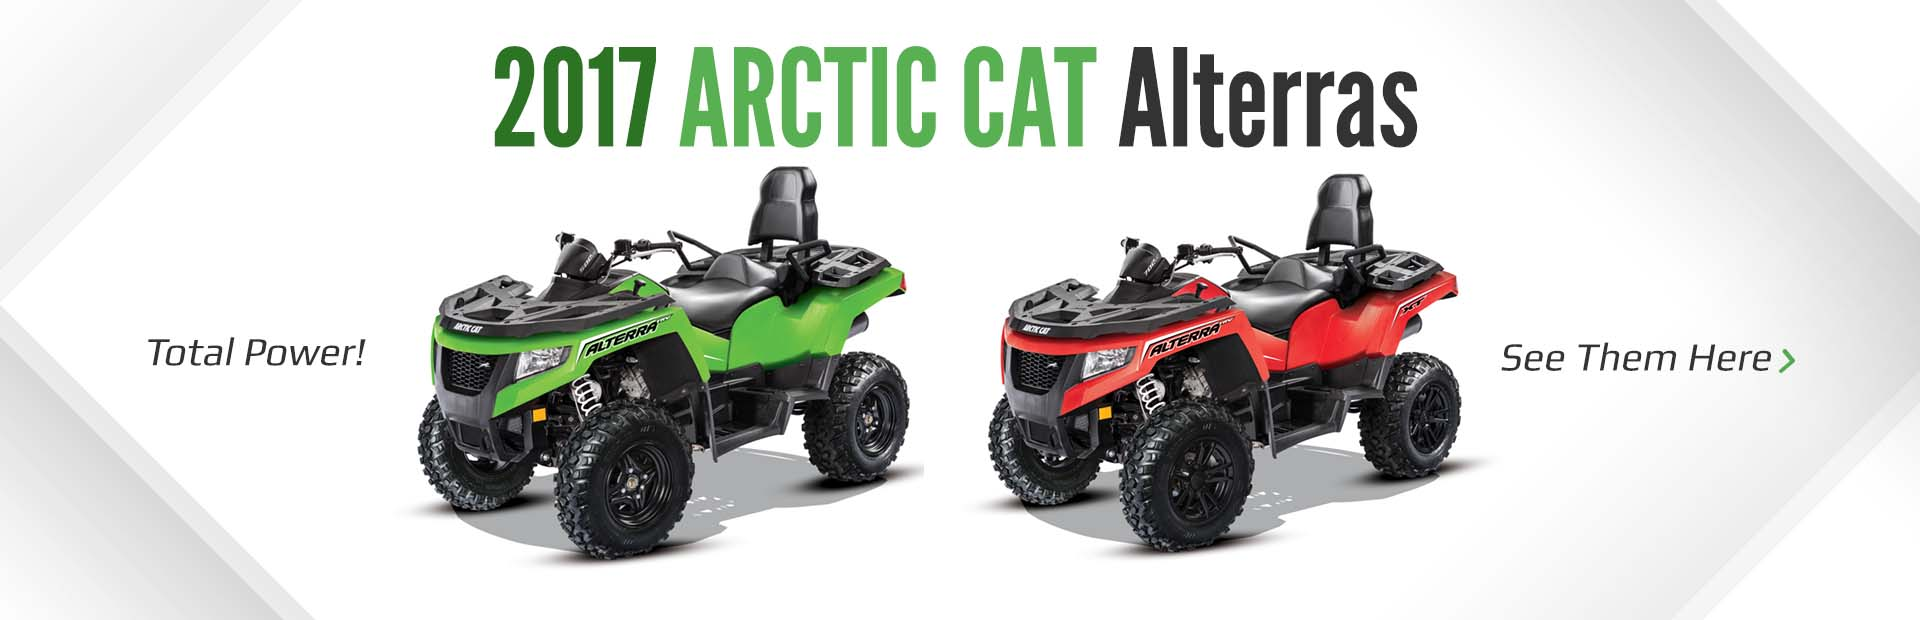 2017 Arctic Cat Alterras: Click here to view our selection!